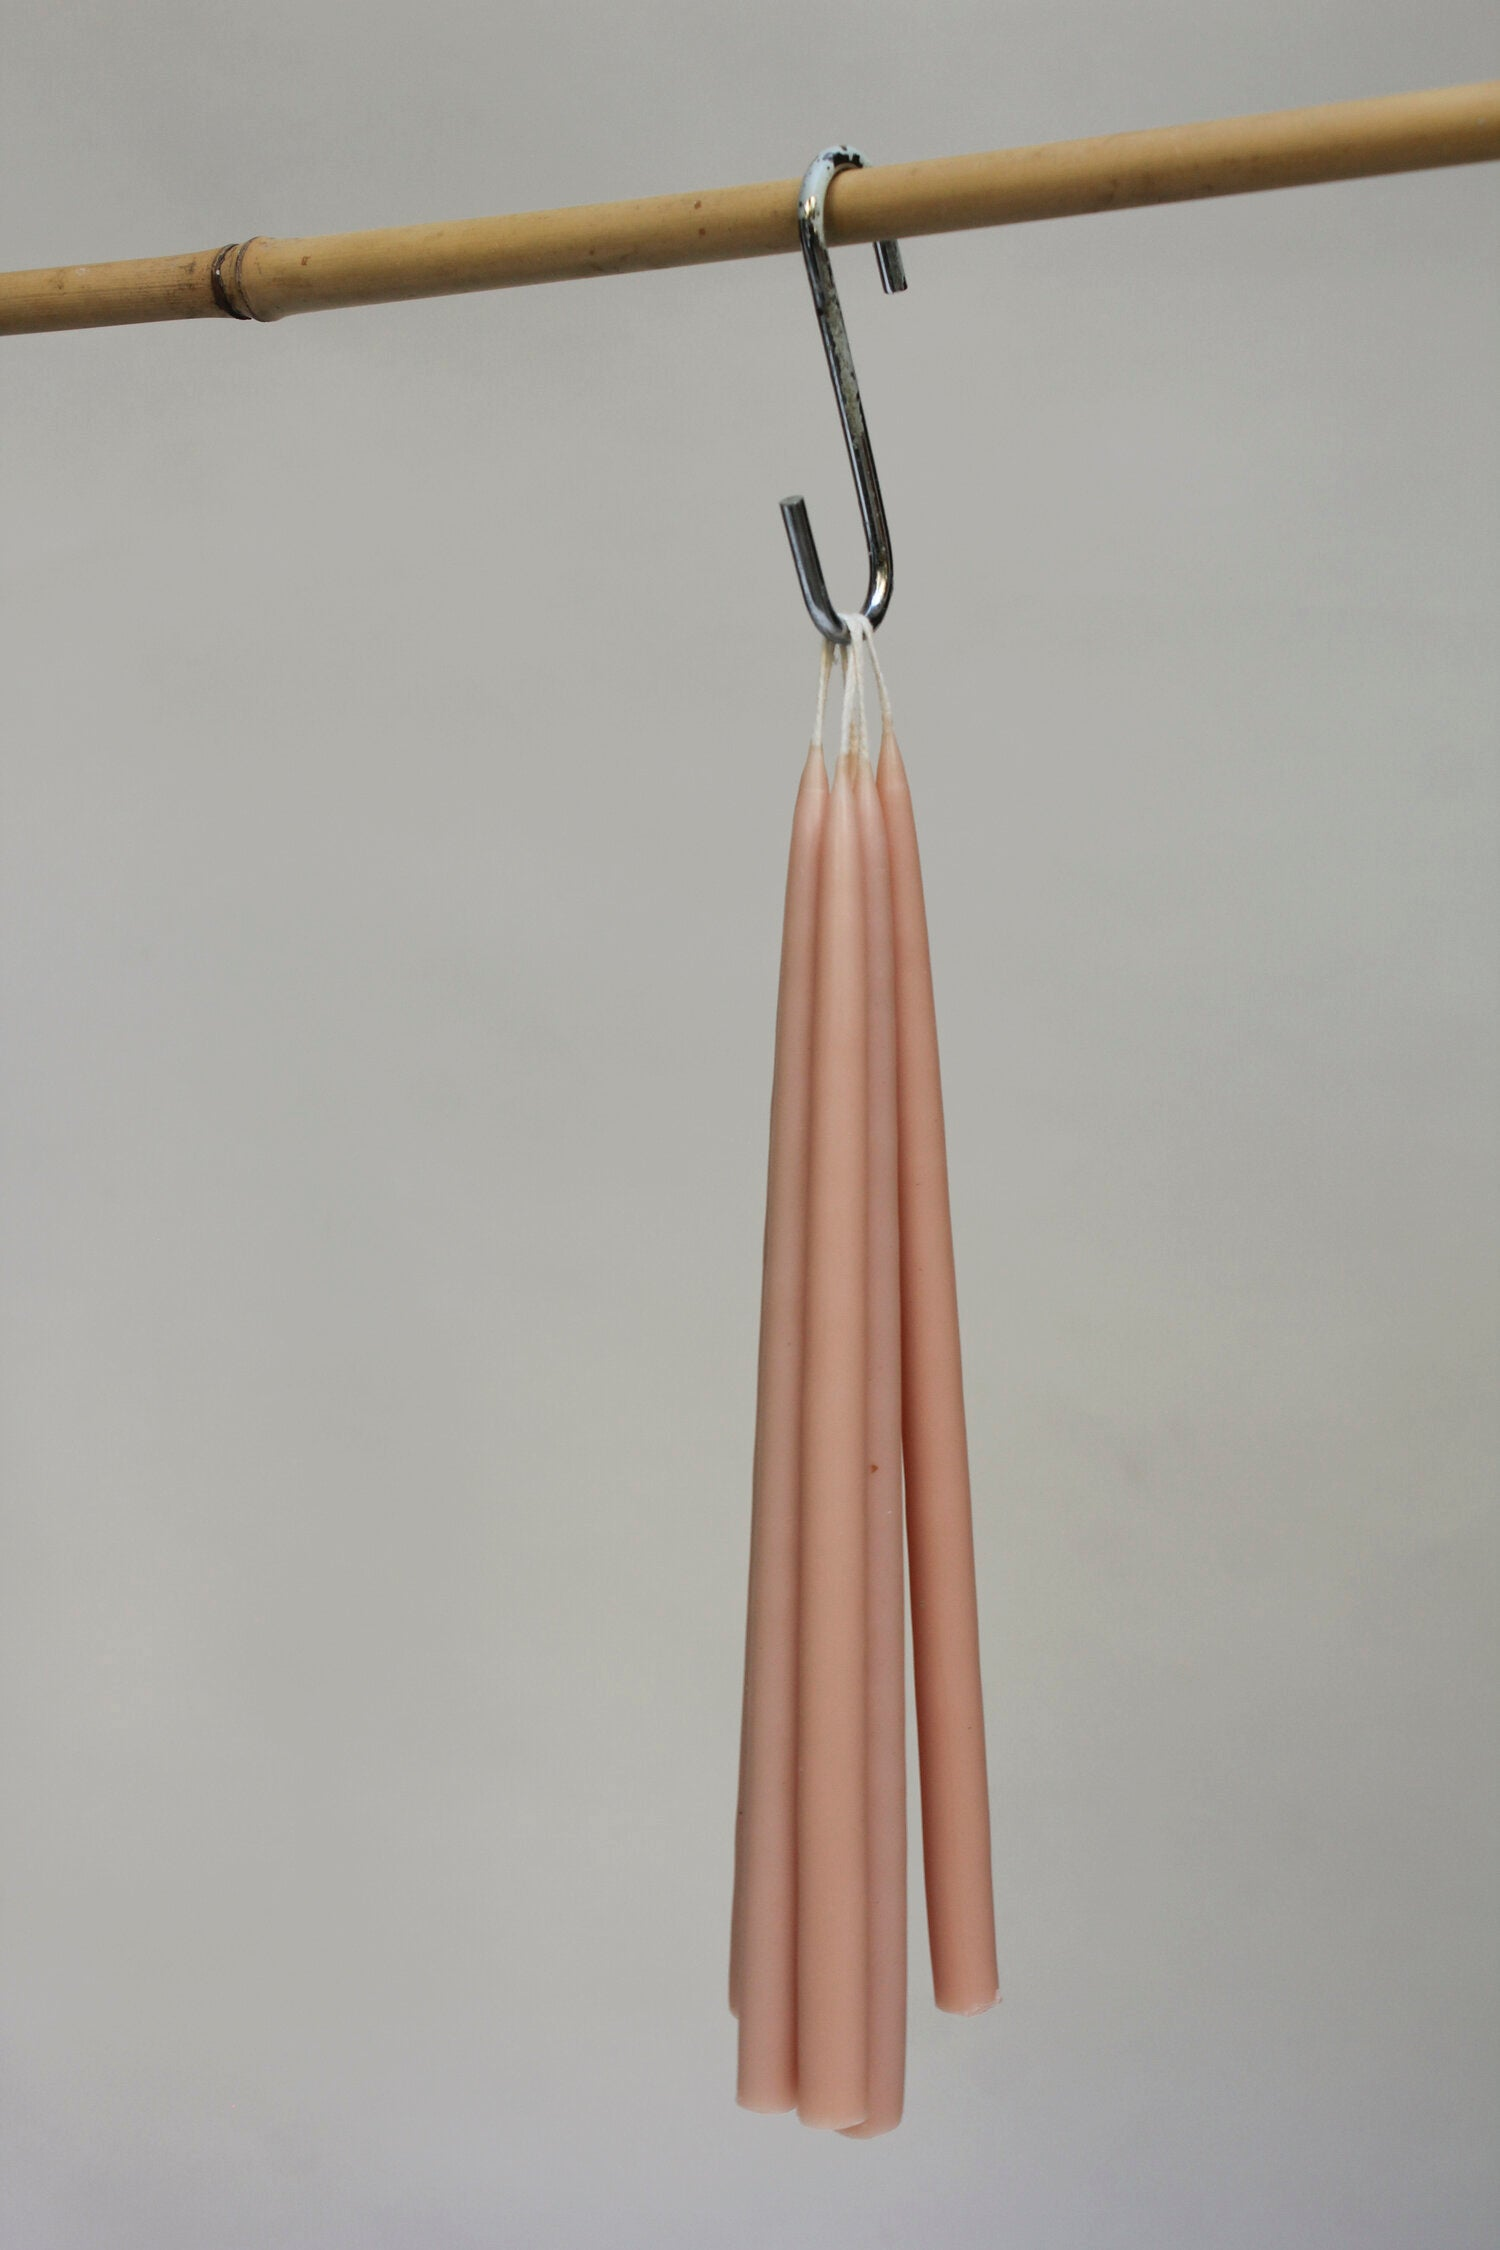 6 TAPERED CANDLES - PINK BLOSSOM